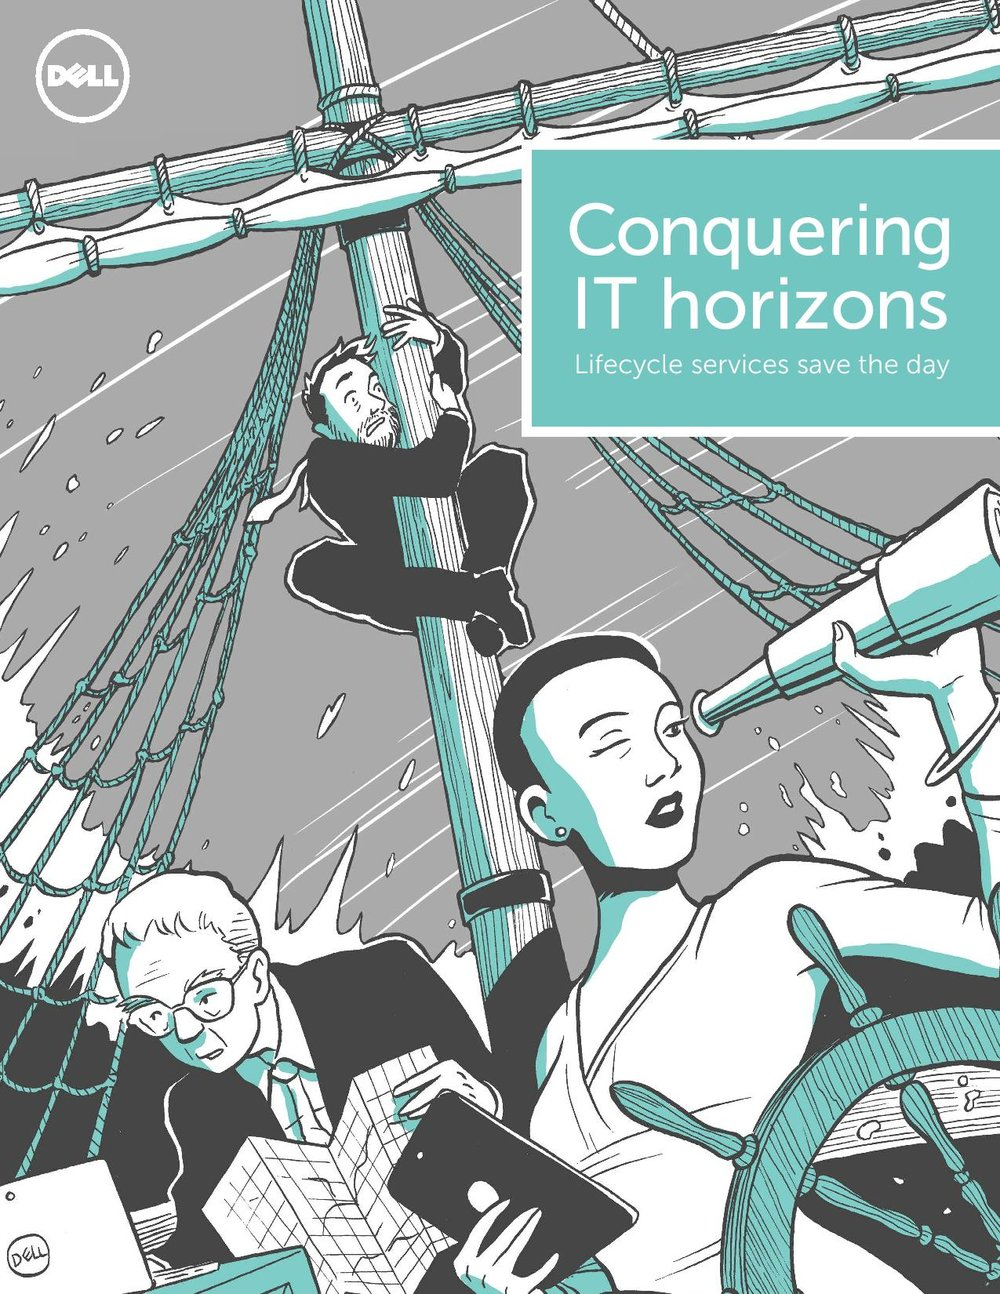 Dell Services - Conquering IT horizons - ONLINE 2 (1)-page-001.jpg